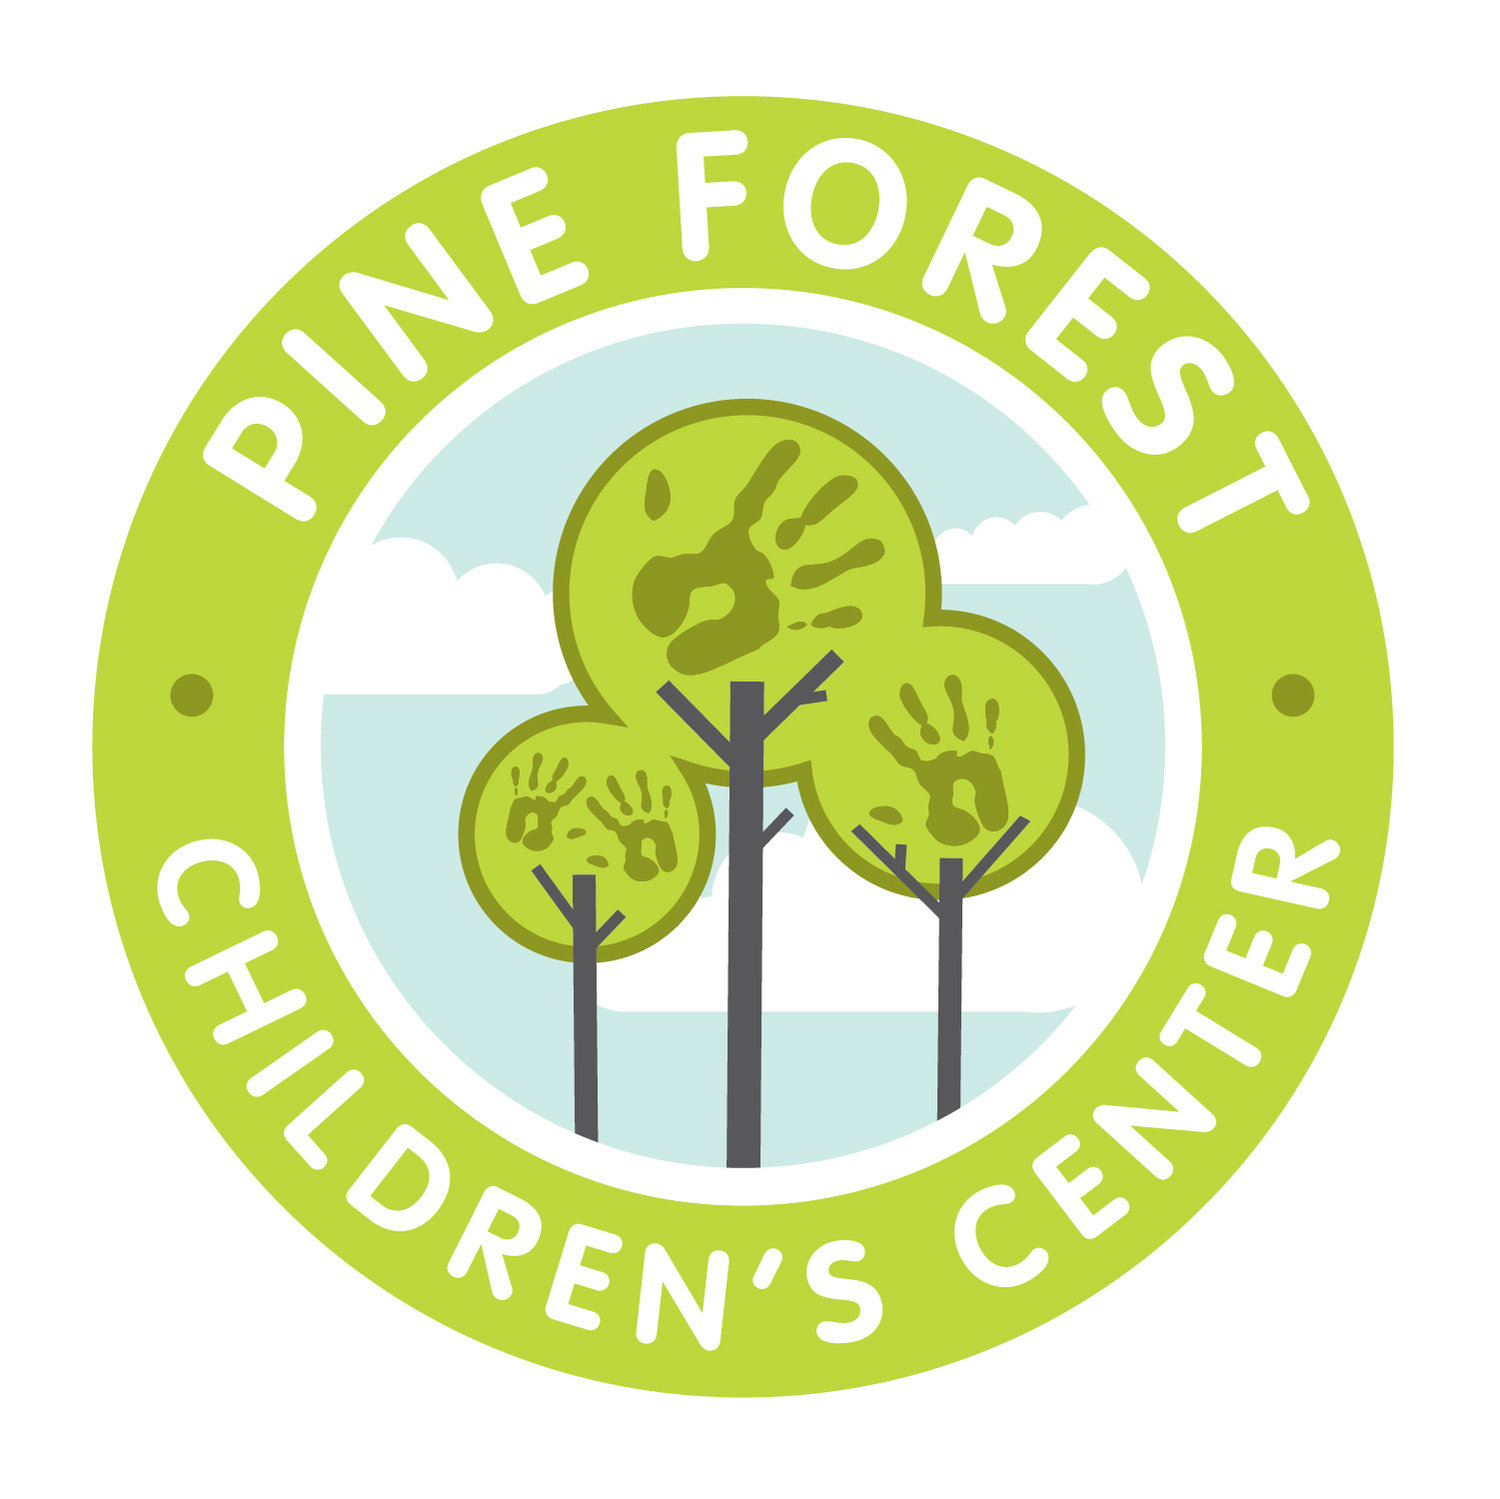 Pine Forest Children's Center